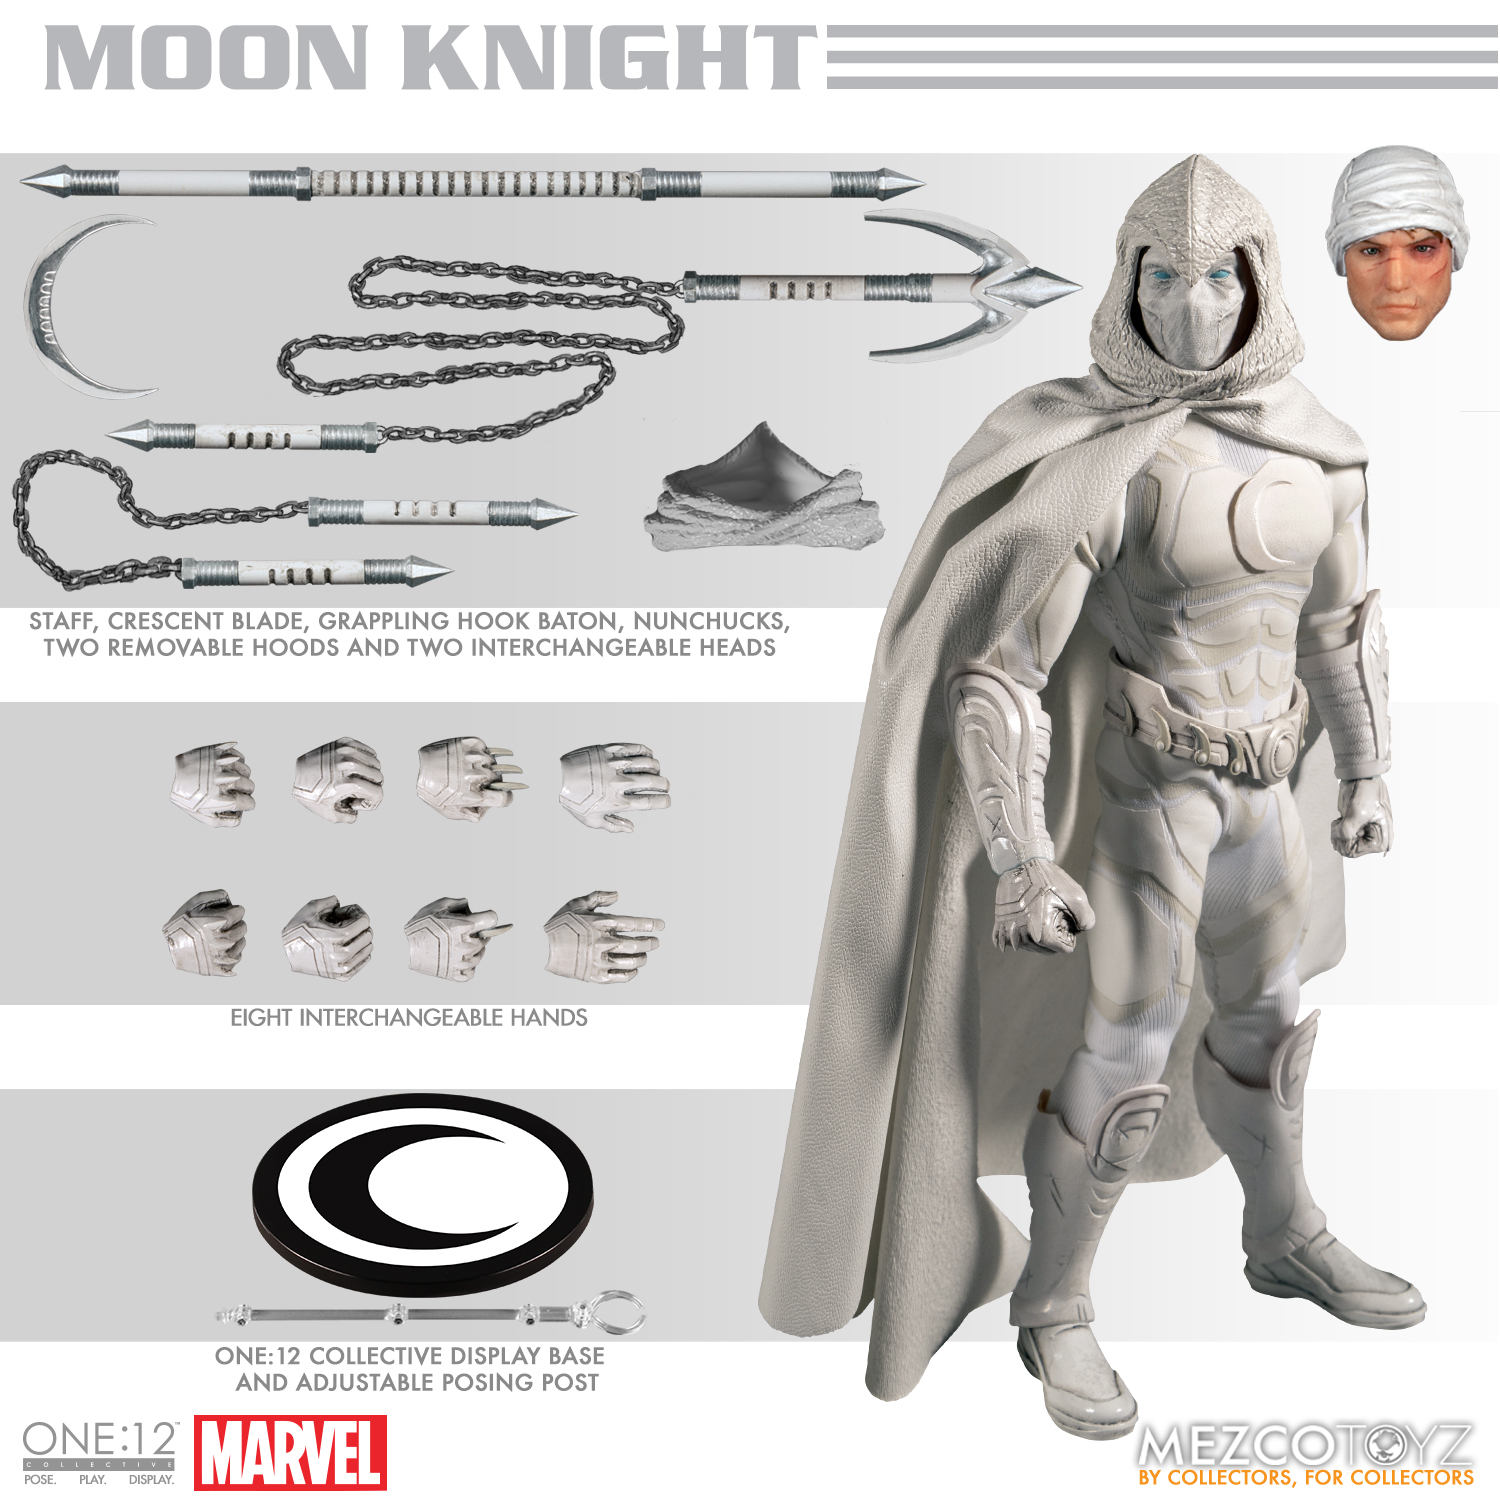 "Mezco One:12 collettivo Marvel Moon Knight 6/"" Action Figure"